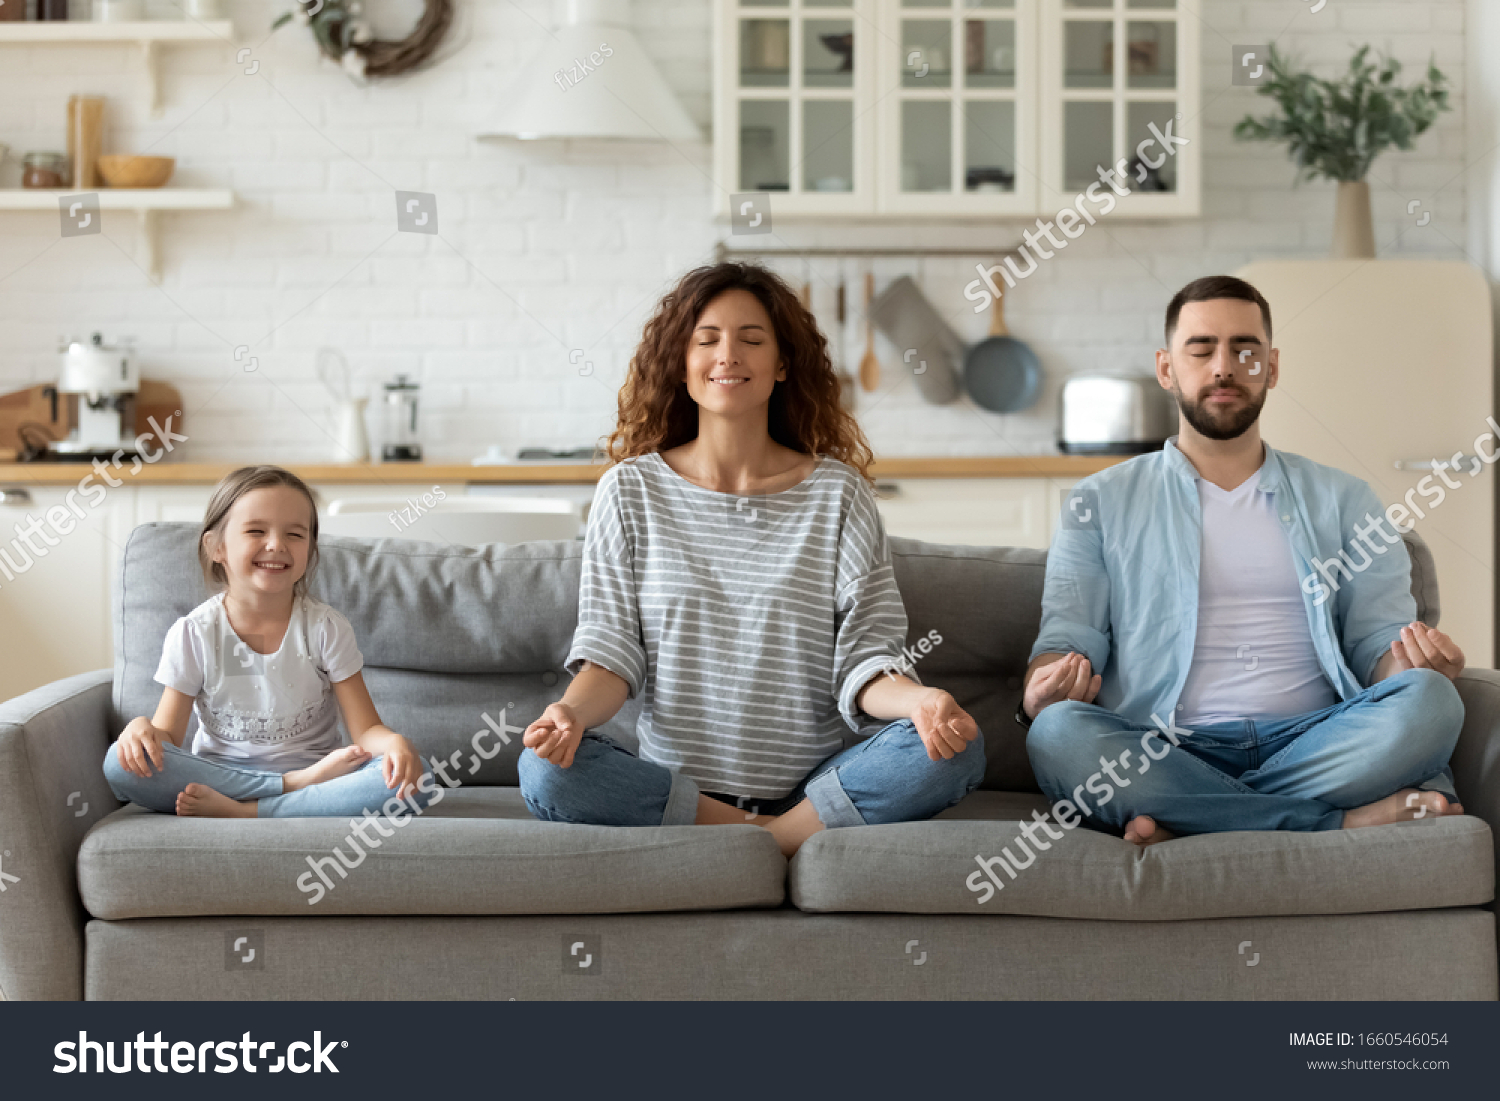 Calm young family with little daughter sit on couch practice yoga together, happy parents with small preschooler girl child rest on sofa meditate relieve negative emotions on weekend at home #1660546054